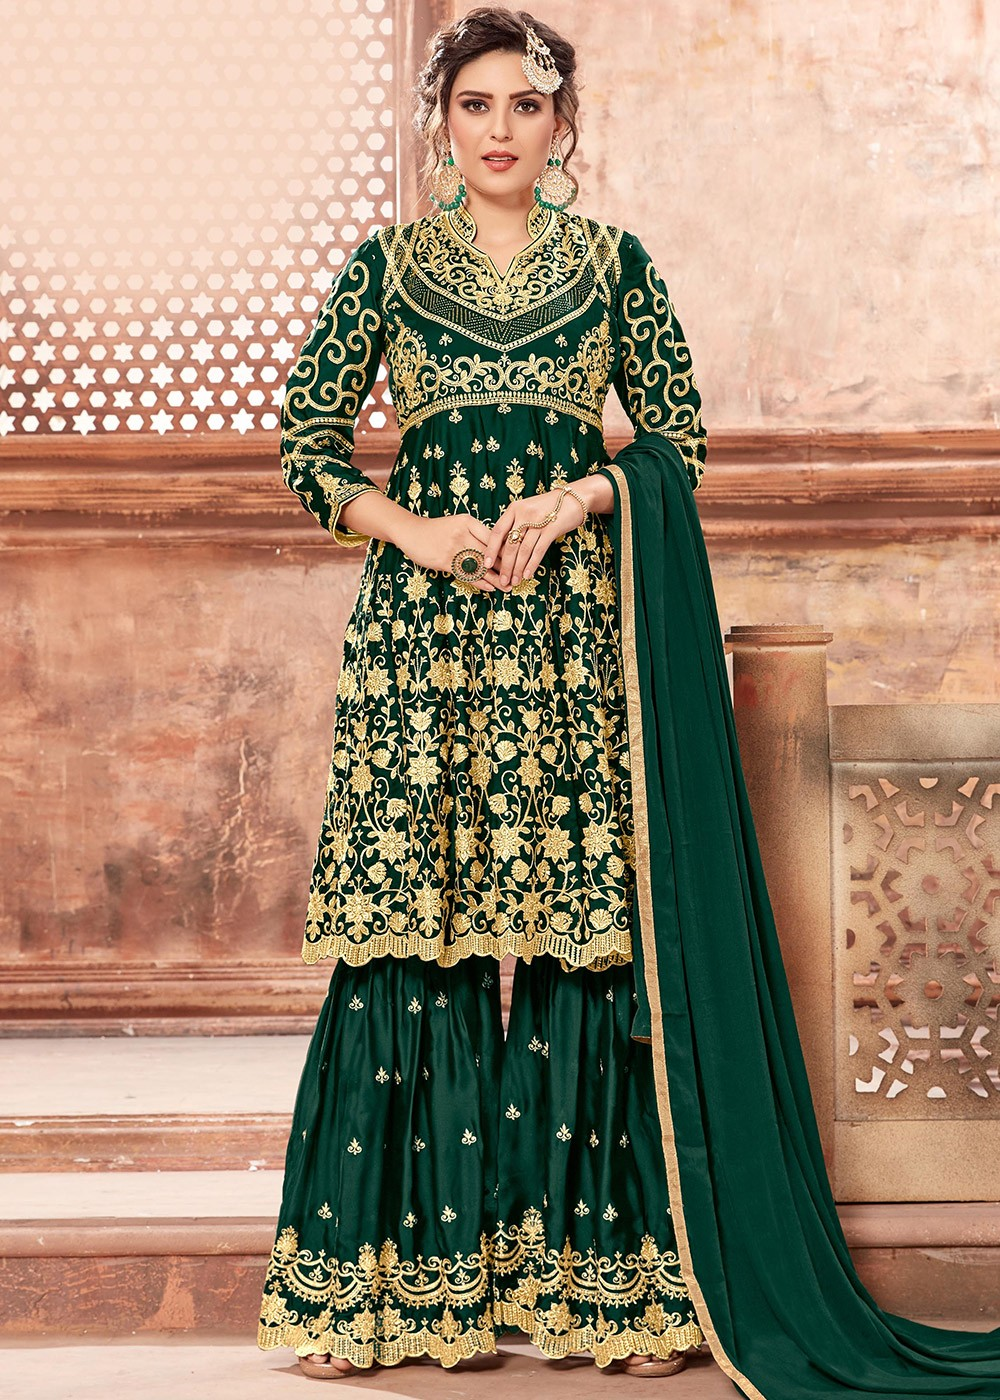 a3fcafbb96 Green Heavy Embroidered Pakistani Sharara Suit. Tap to expand